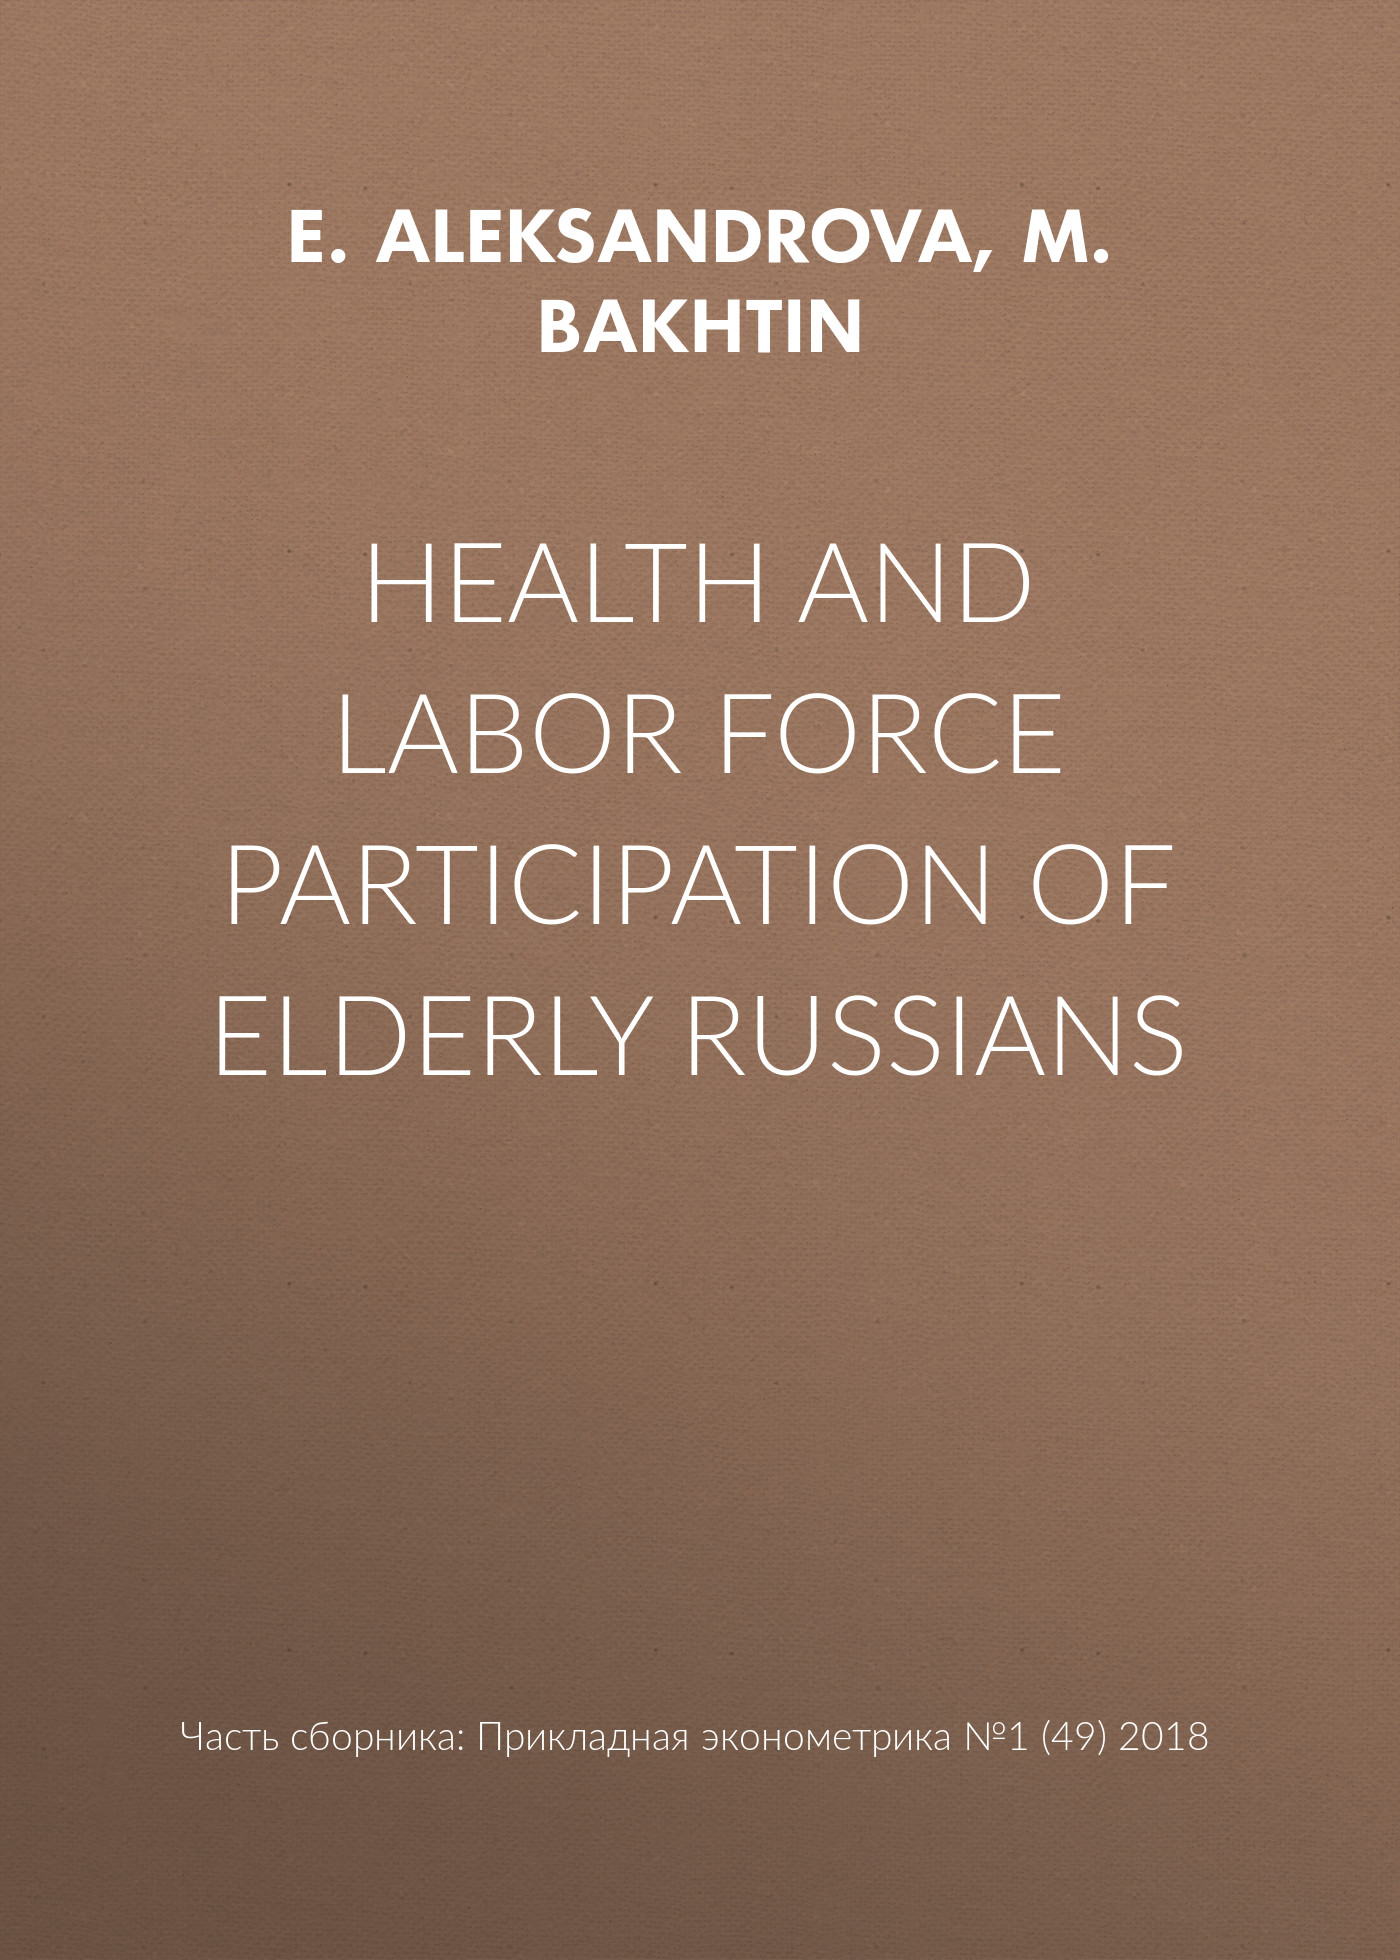 Health and labor force participation of elderly Russians